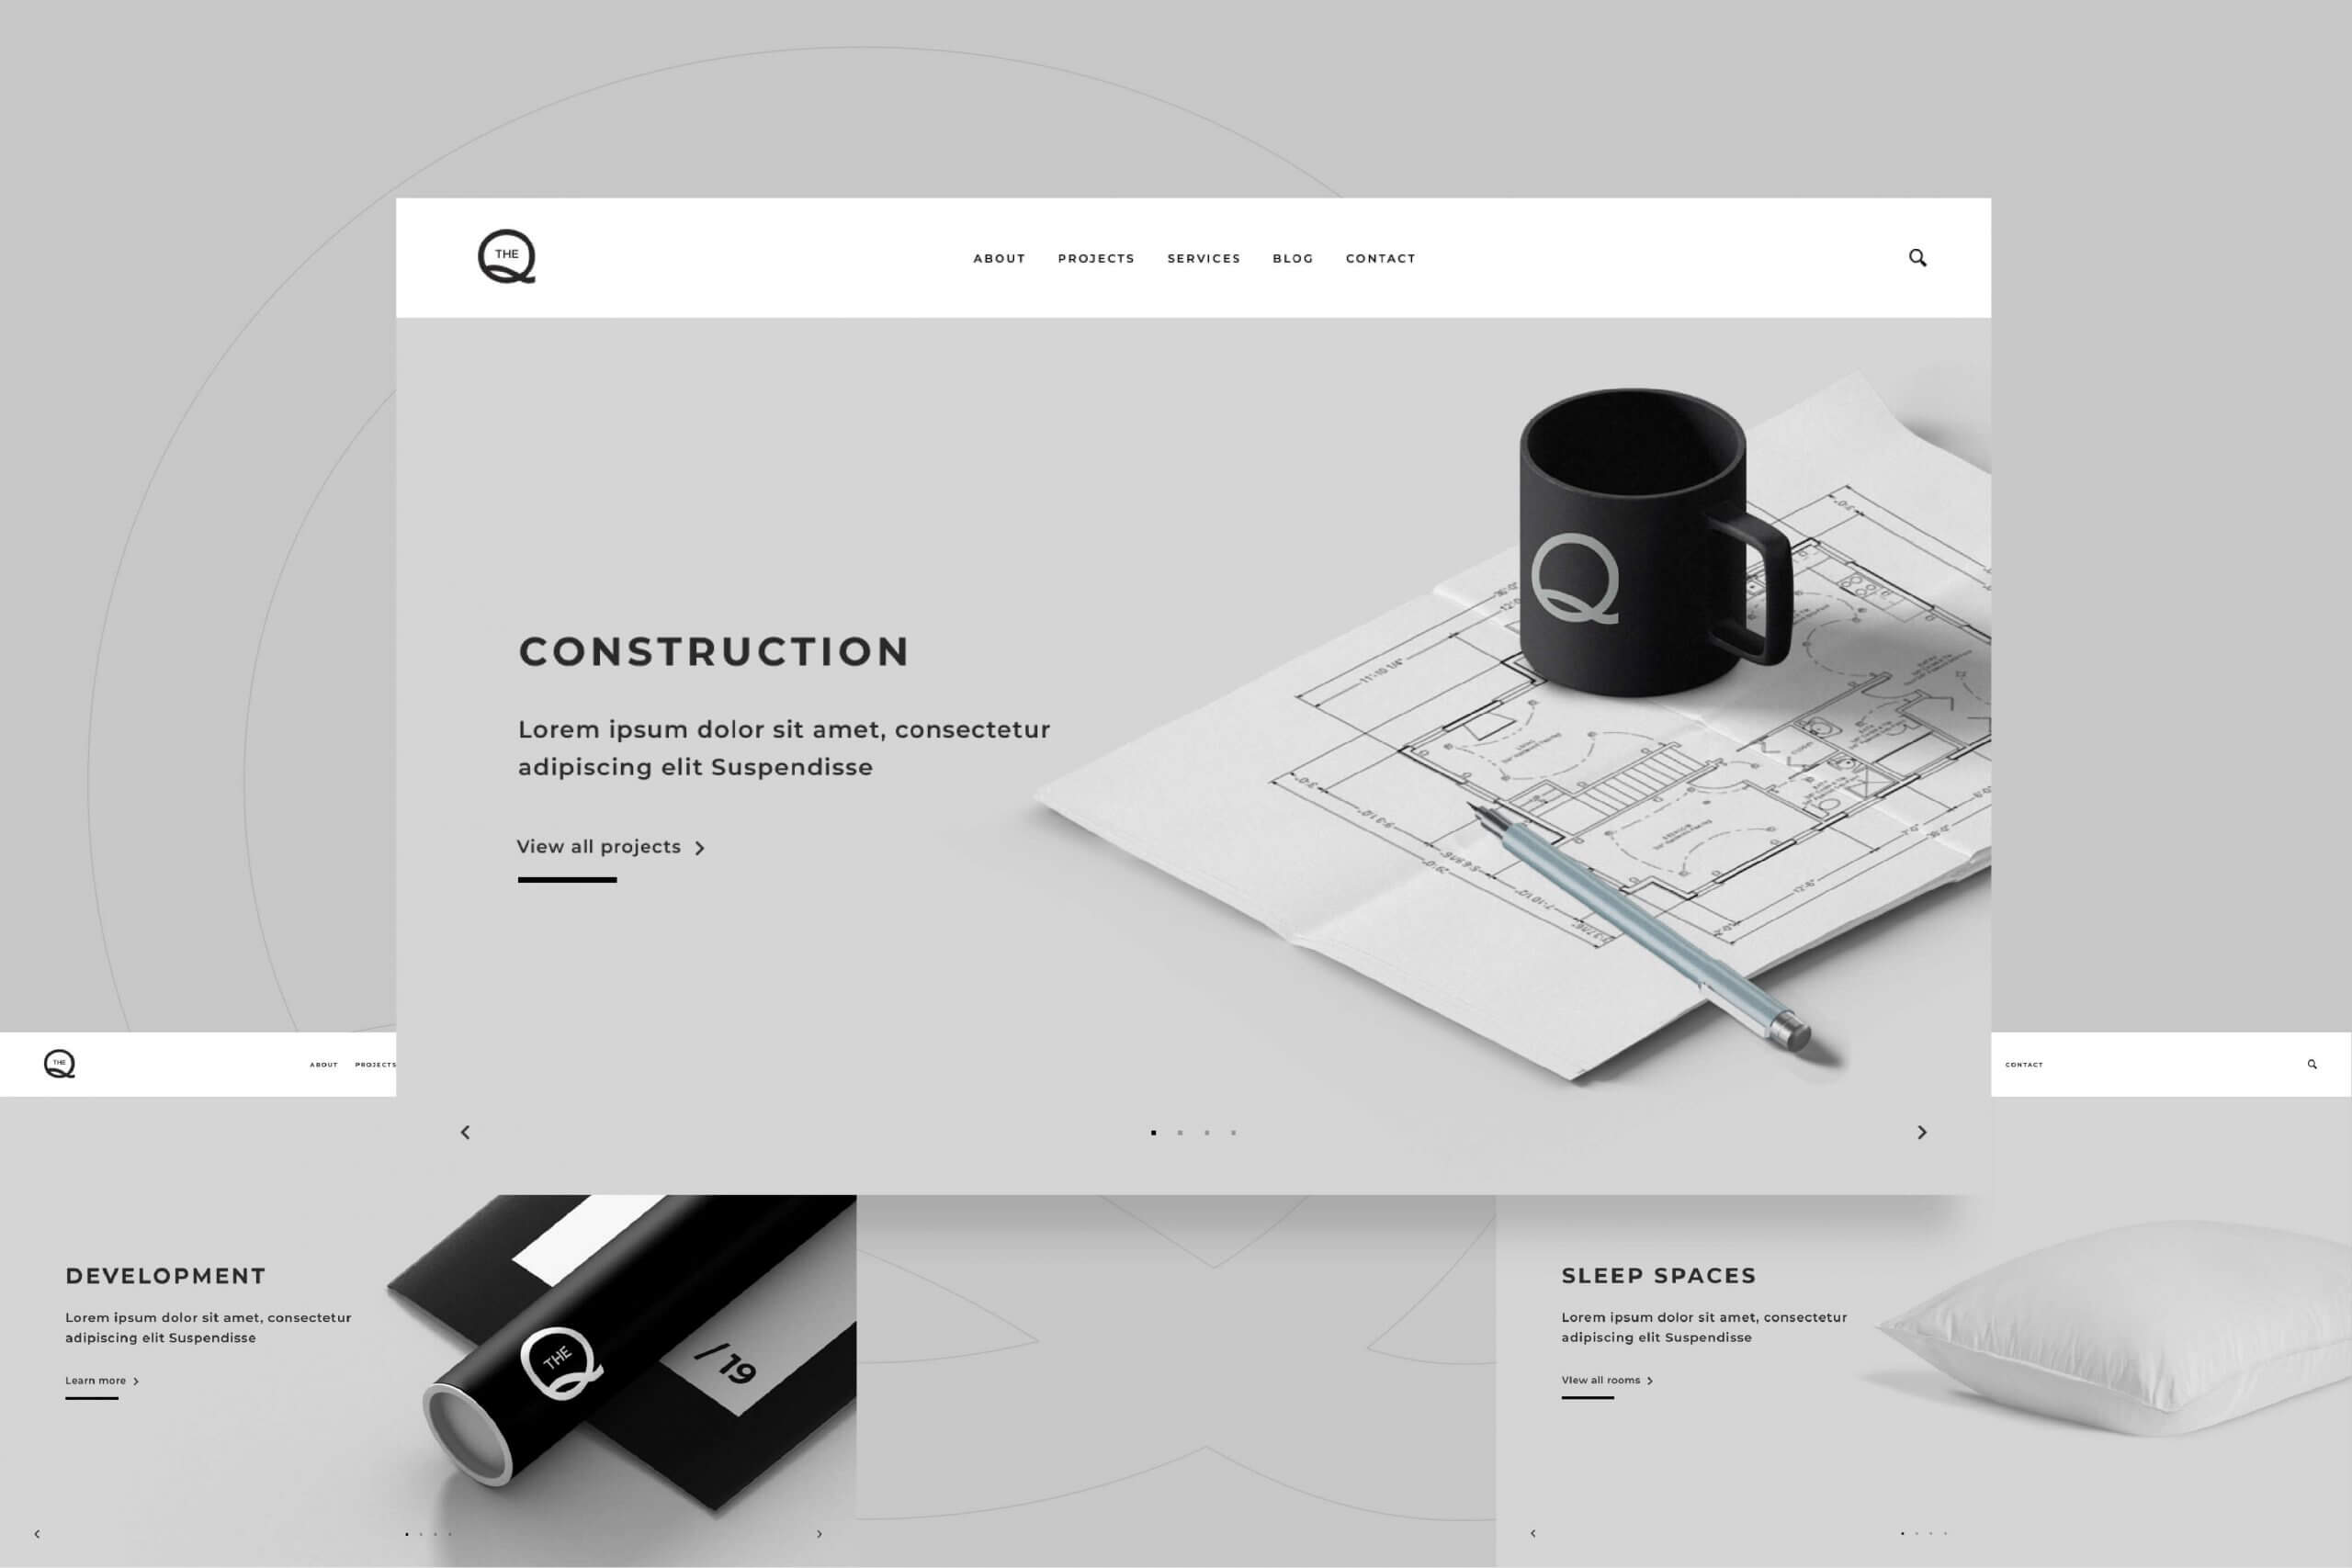 The-Q-website-and-app-design-ux-and-branding-4-scaled-1